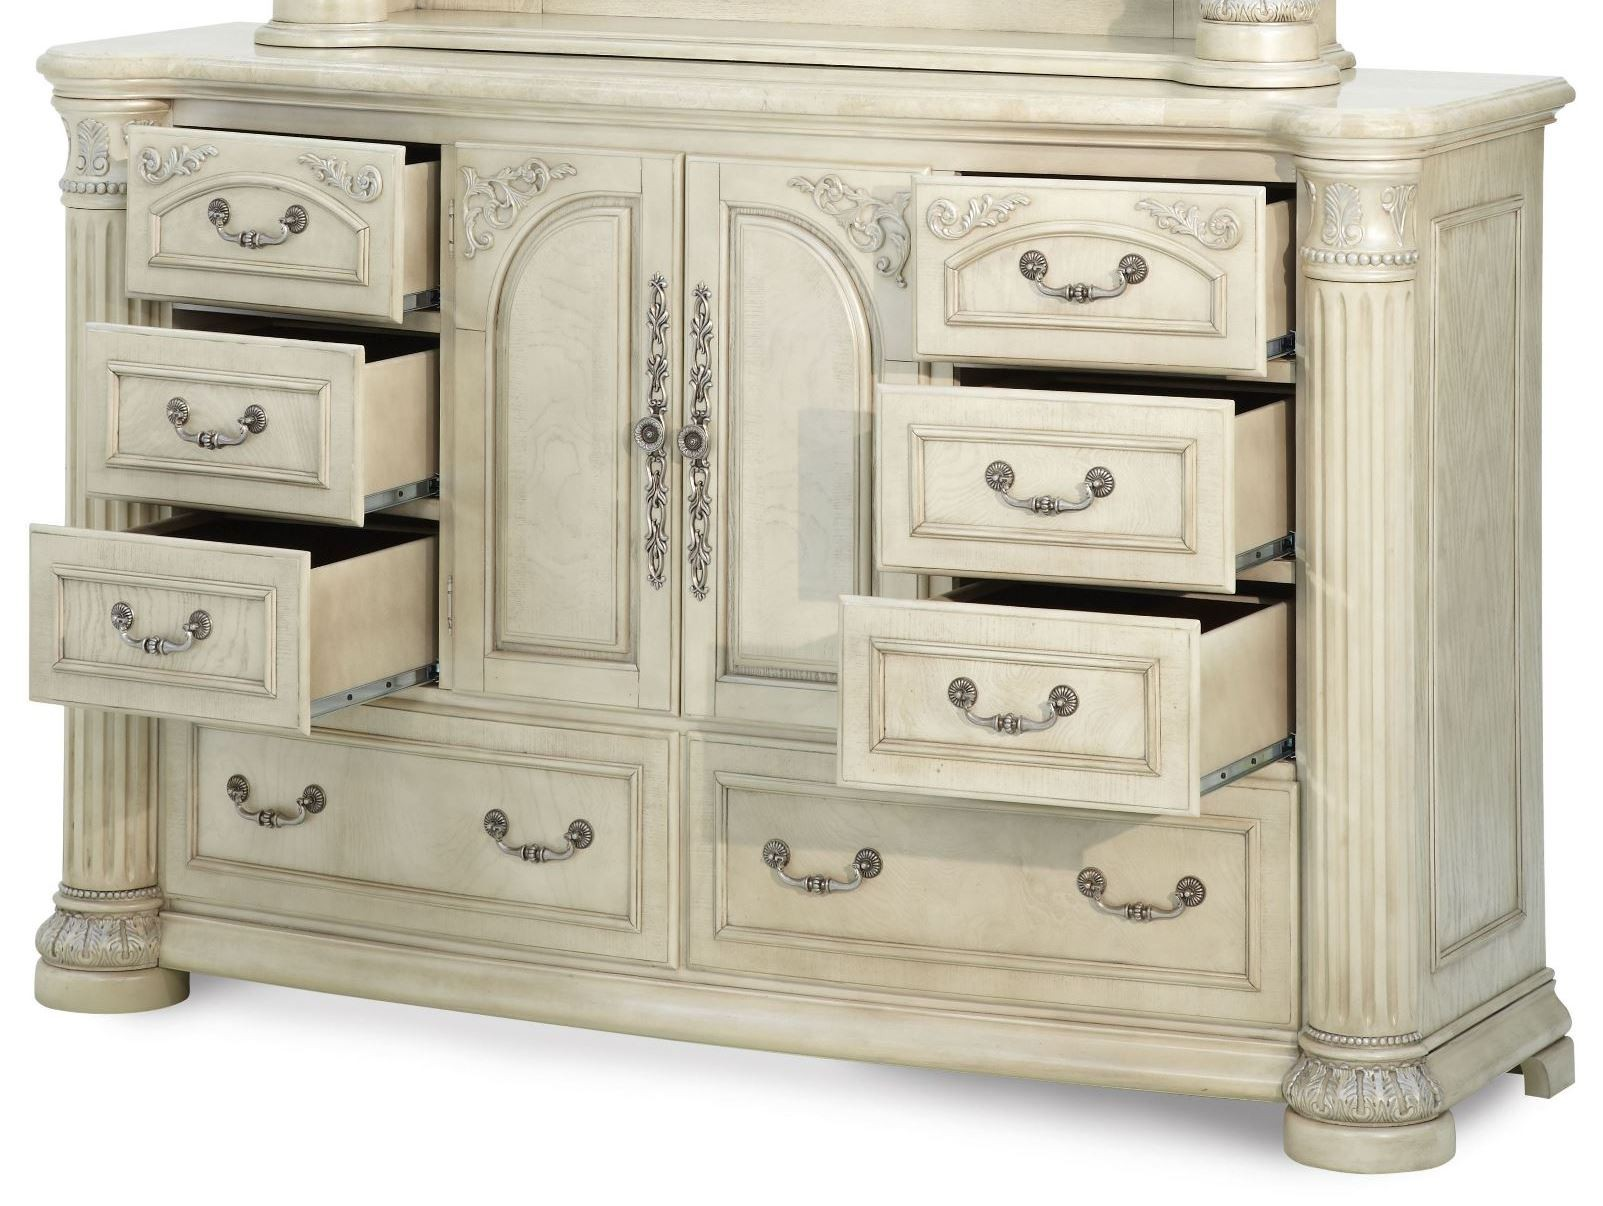 Monte Carlo Ii Silver Pearl Poster Canopy Bedroom Set By Aico Furniture N53000qncan 03